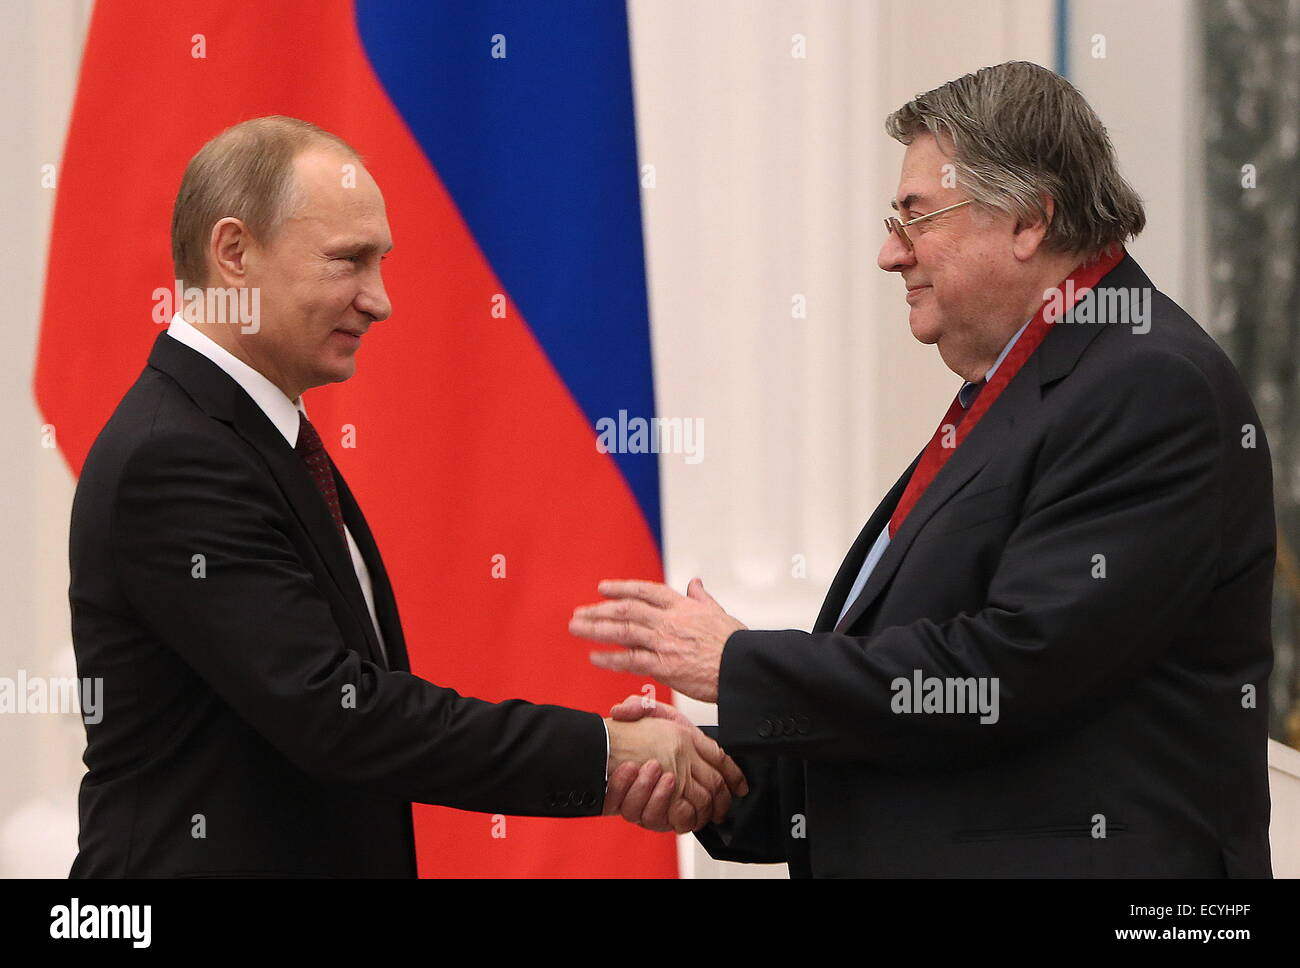 Alexander Shirvindt was hospitalized in Moscow due to heart problems 01/22/2016 82